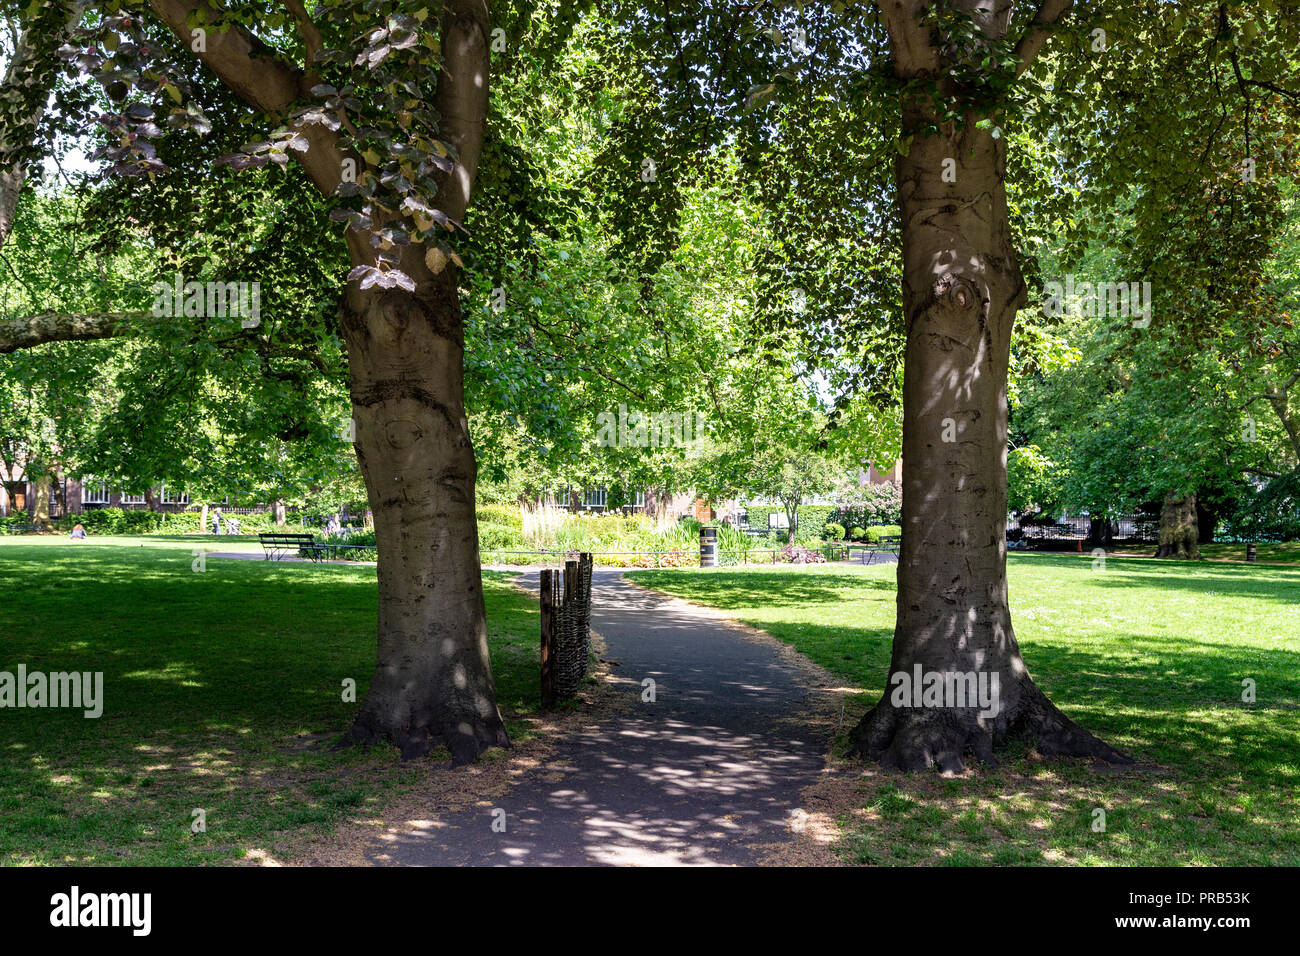 Brunswick Square gardens, a public park in Bloomsbury, central London, UK - Stock Image